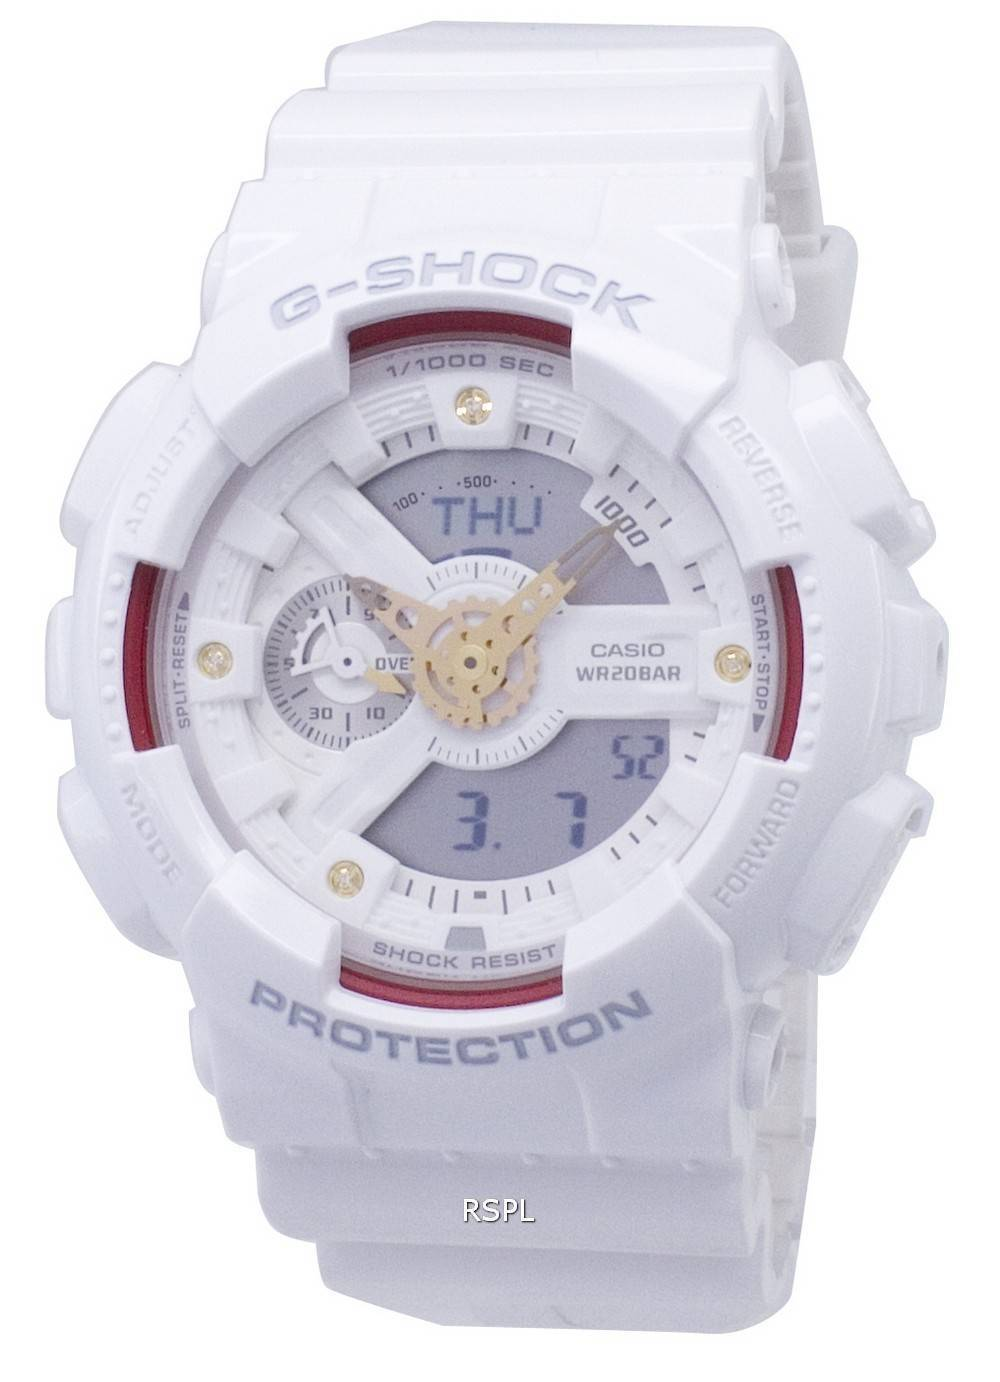 Casio G-Shock GA-110DDR-7A GA110DDR-7A Analog Digital 200M Men's Watch